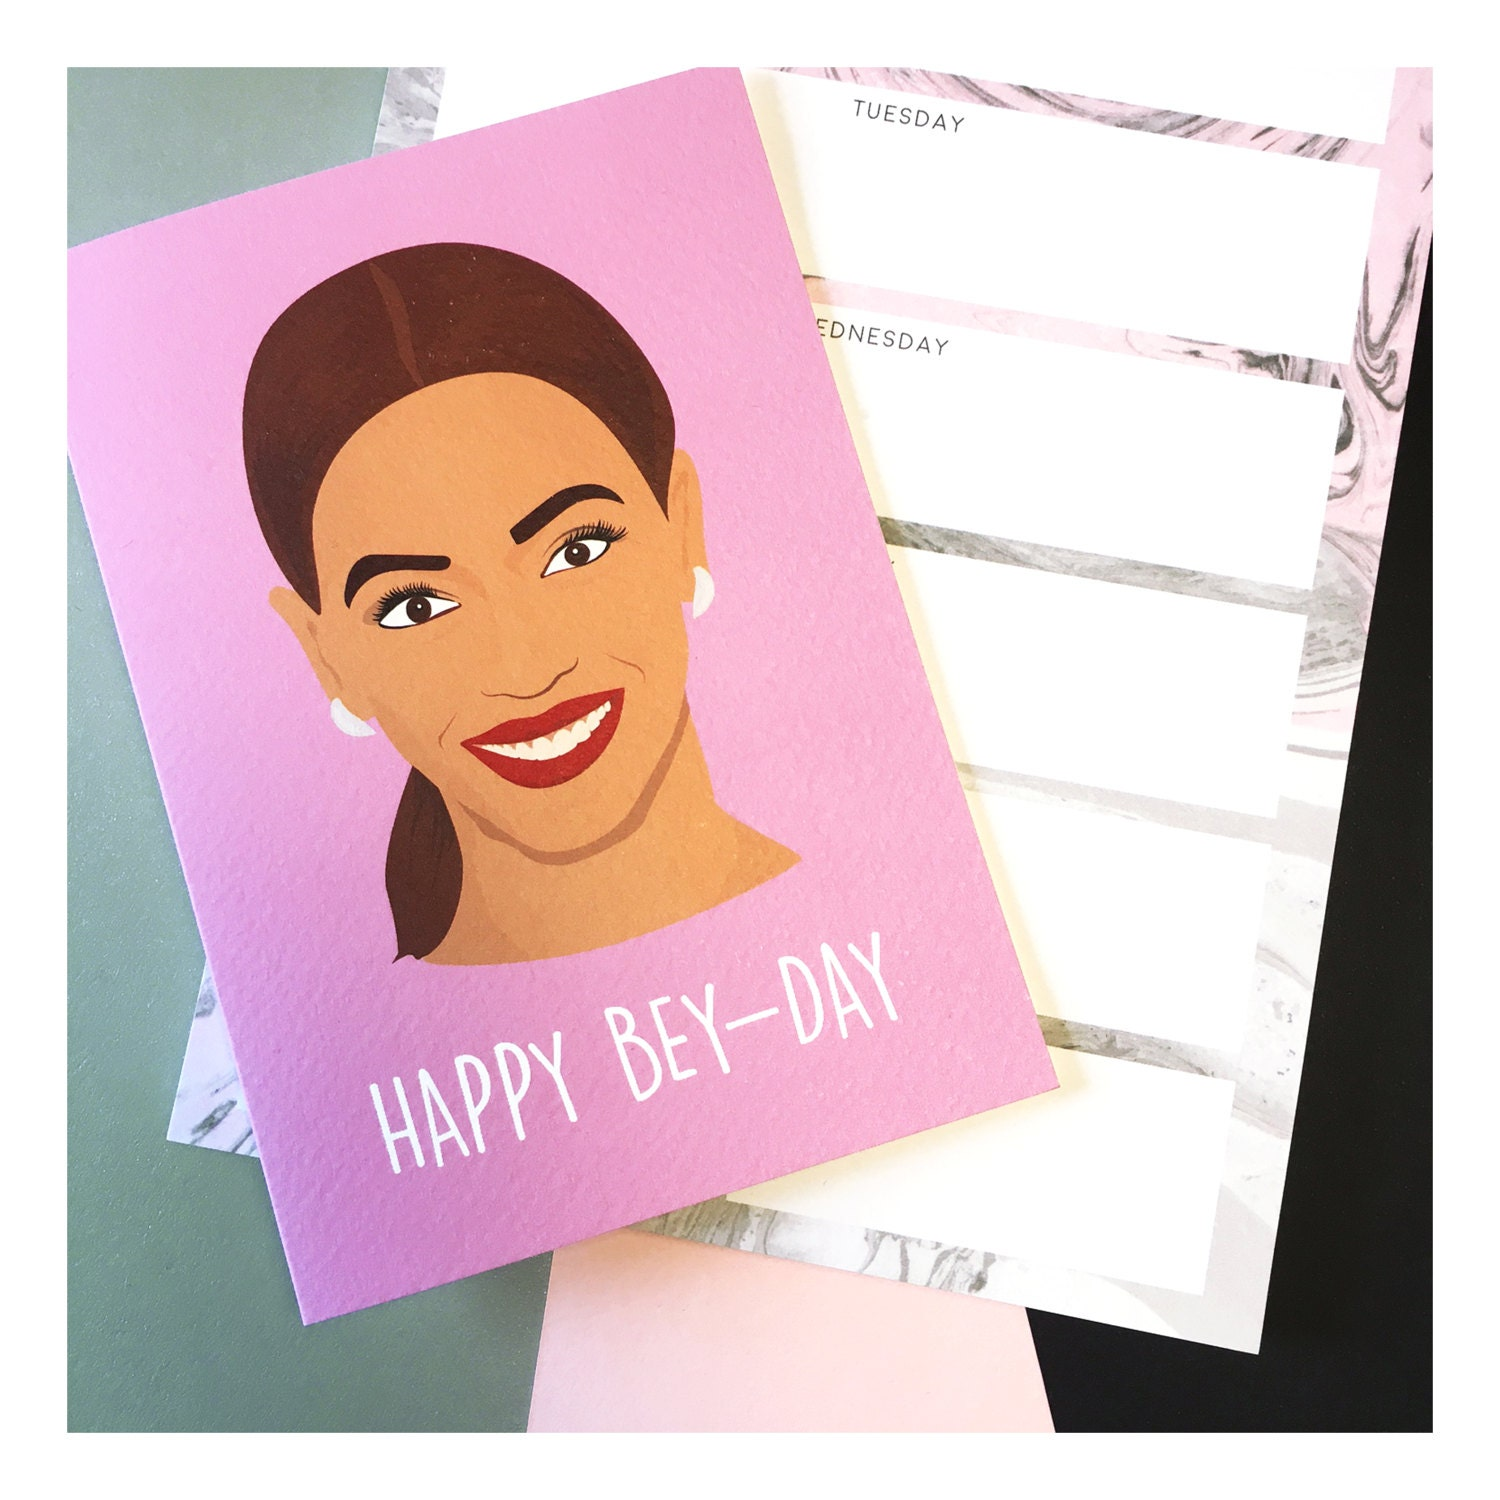 Happy Bey-Day Beyonce Themed Birthday Card Beyonce Card